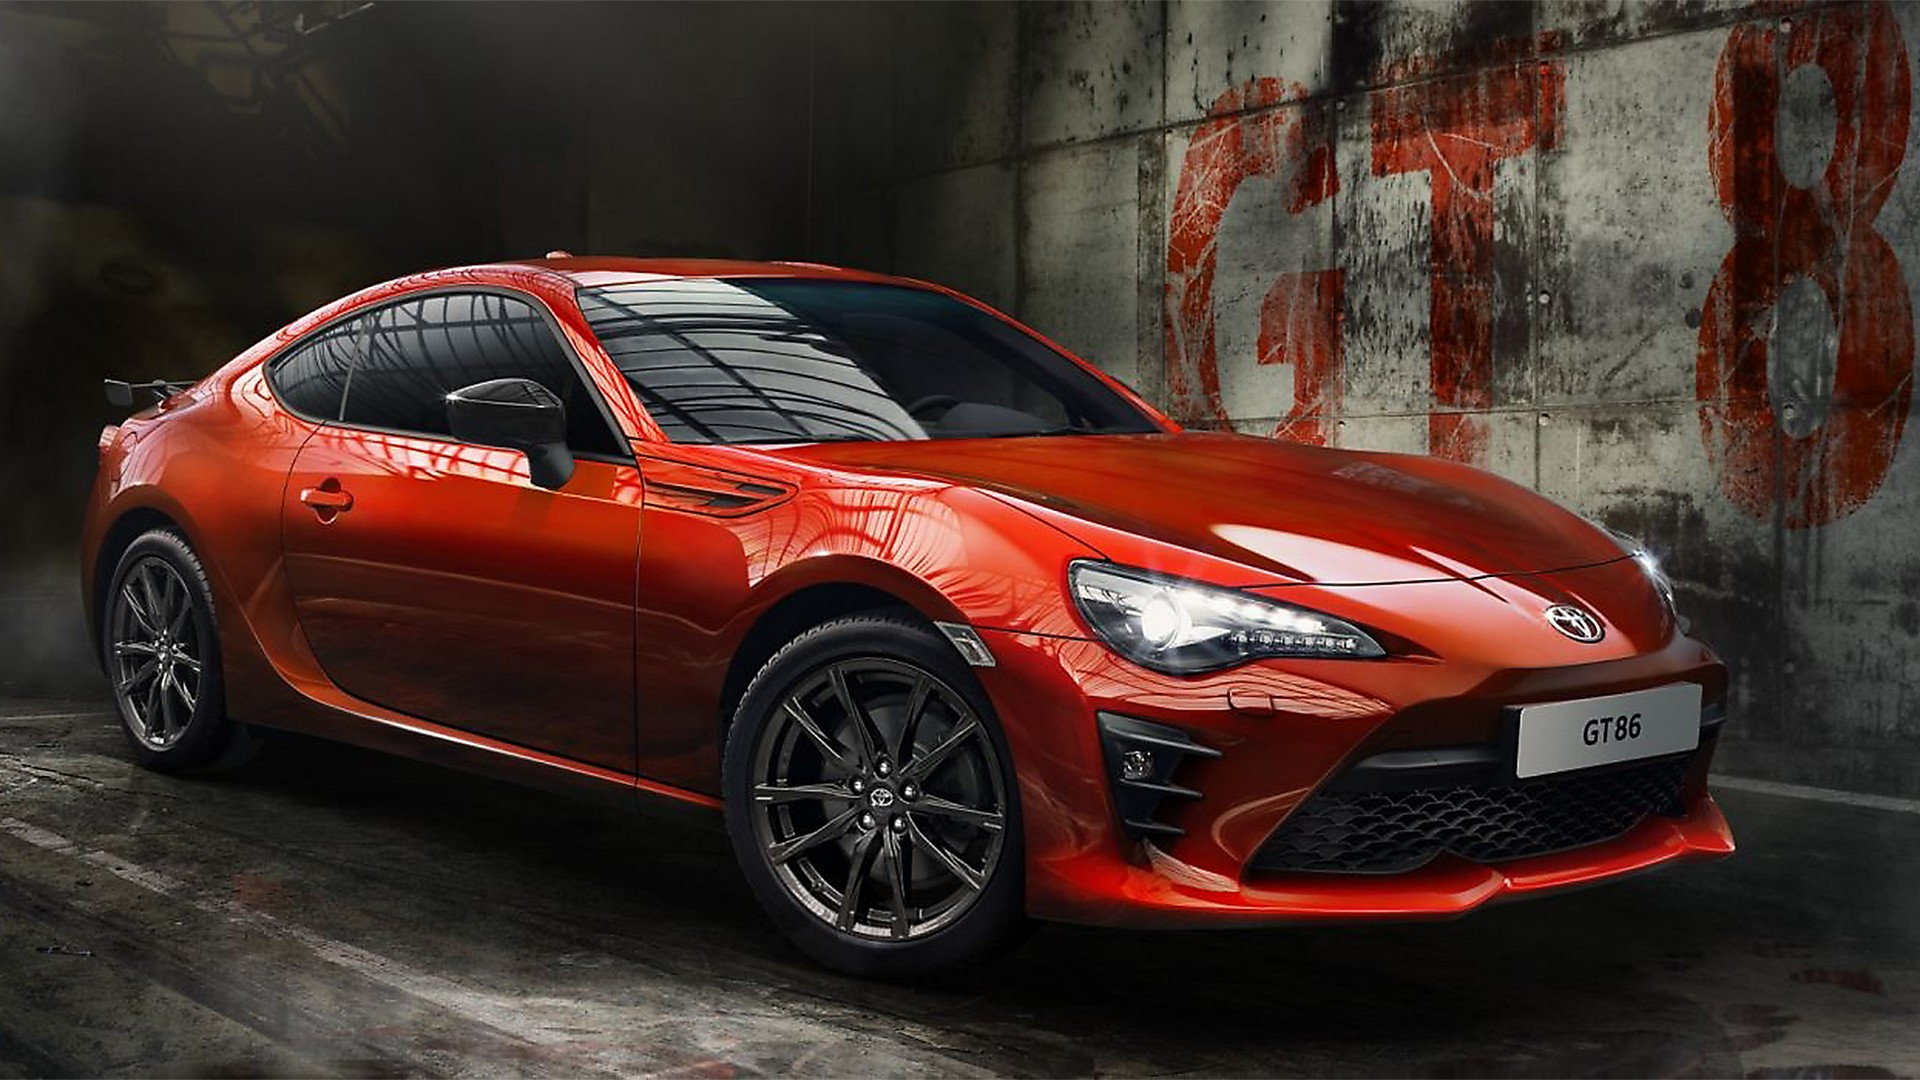 Download Toyota GT86 McQueen Car Mod for Bus Simulator Indonesia, Toyota GT86, AZUMODS, Bus Simulator Indonesia Mod, BUSSID mod, Car Mod, Mod for BUSSID, SGCArena, Toyota Car Mod, Toyota GT86, Toyota GT86 McQueen, Vehicle Mod